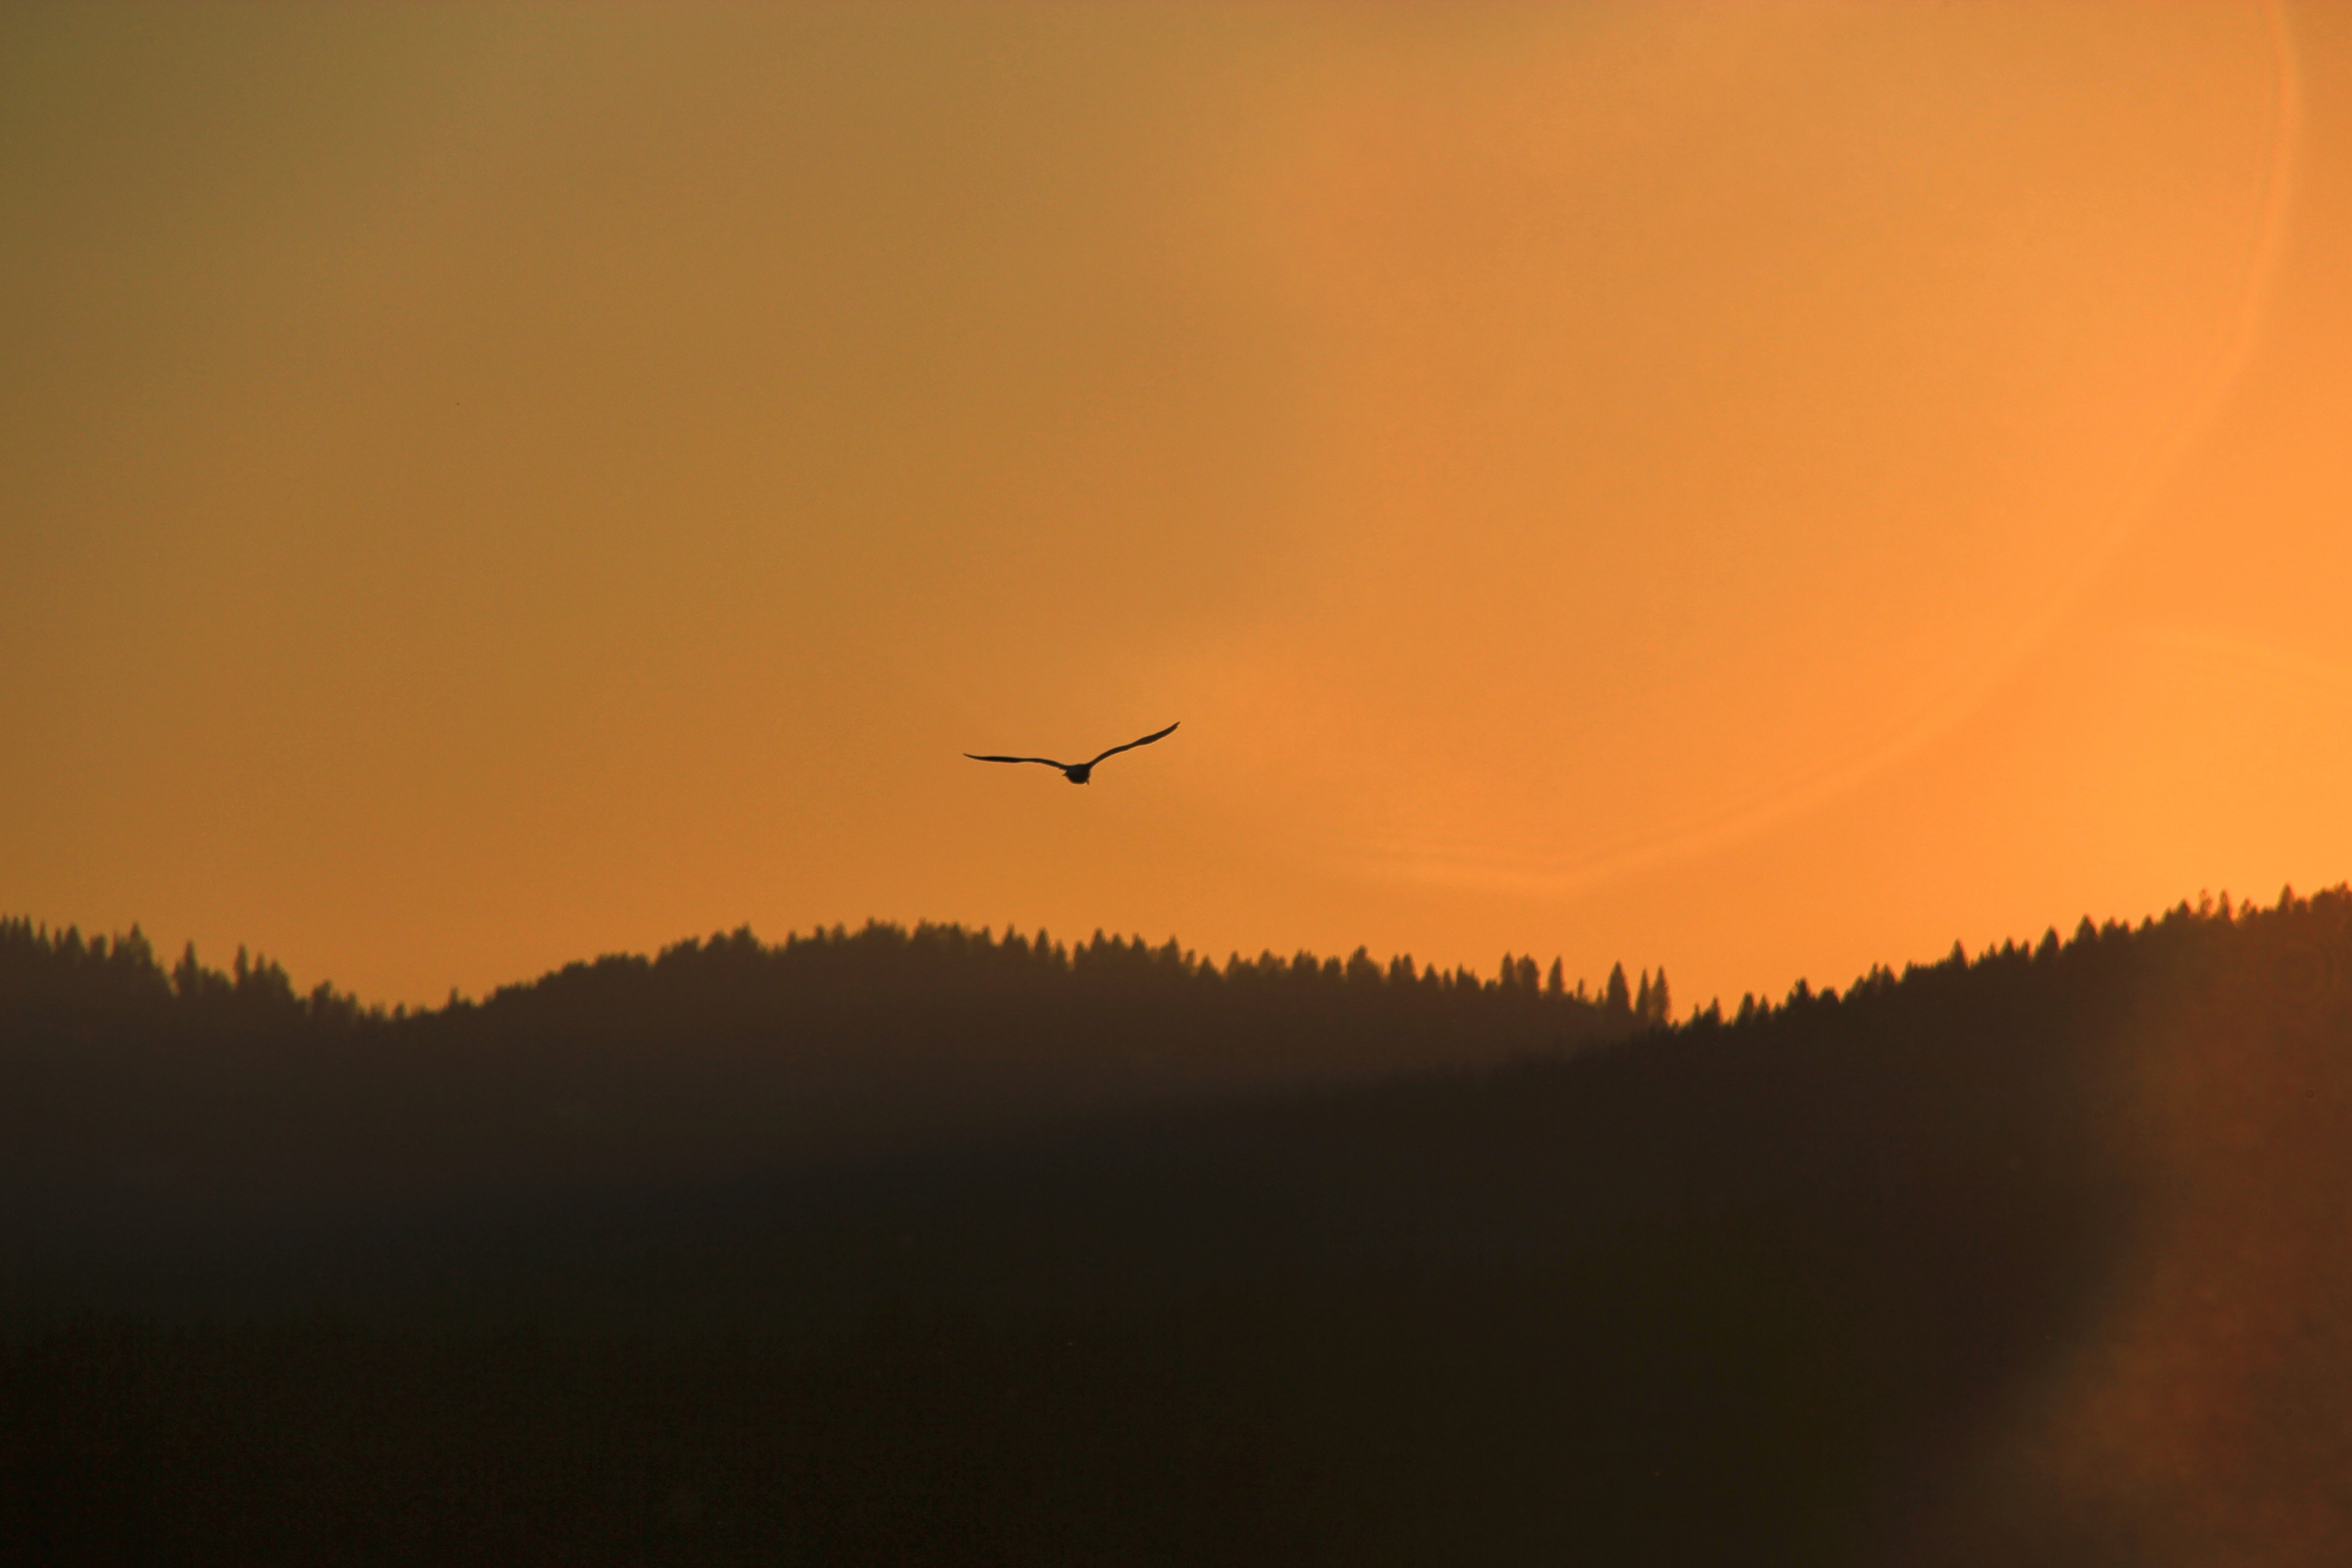 Freedom in the hills, mountains, trees, forest, sunset, flight, flying, bird, mountain